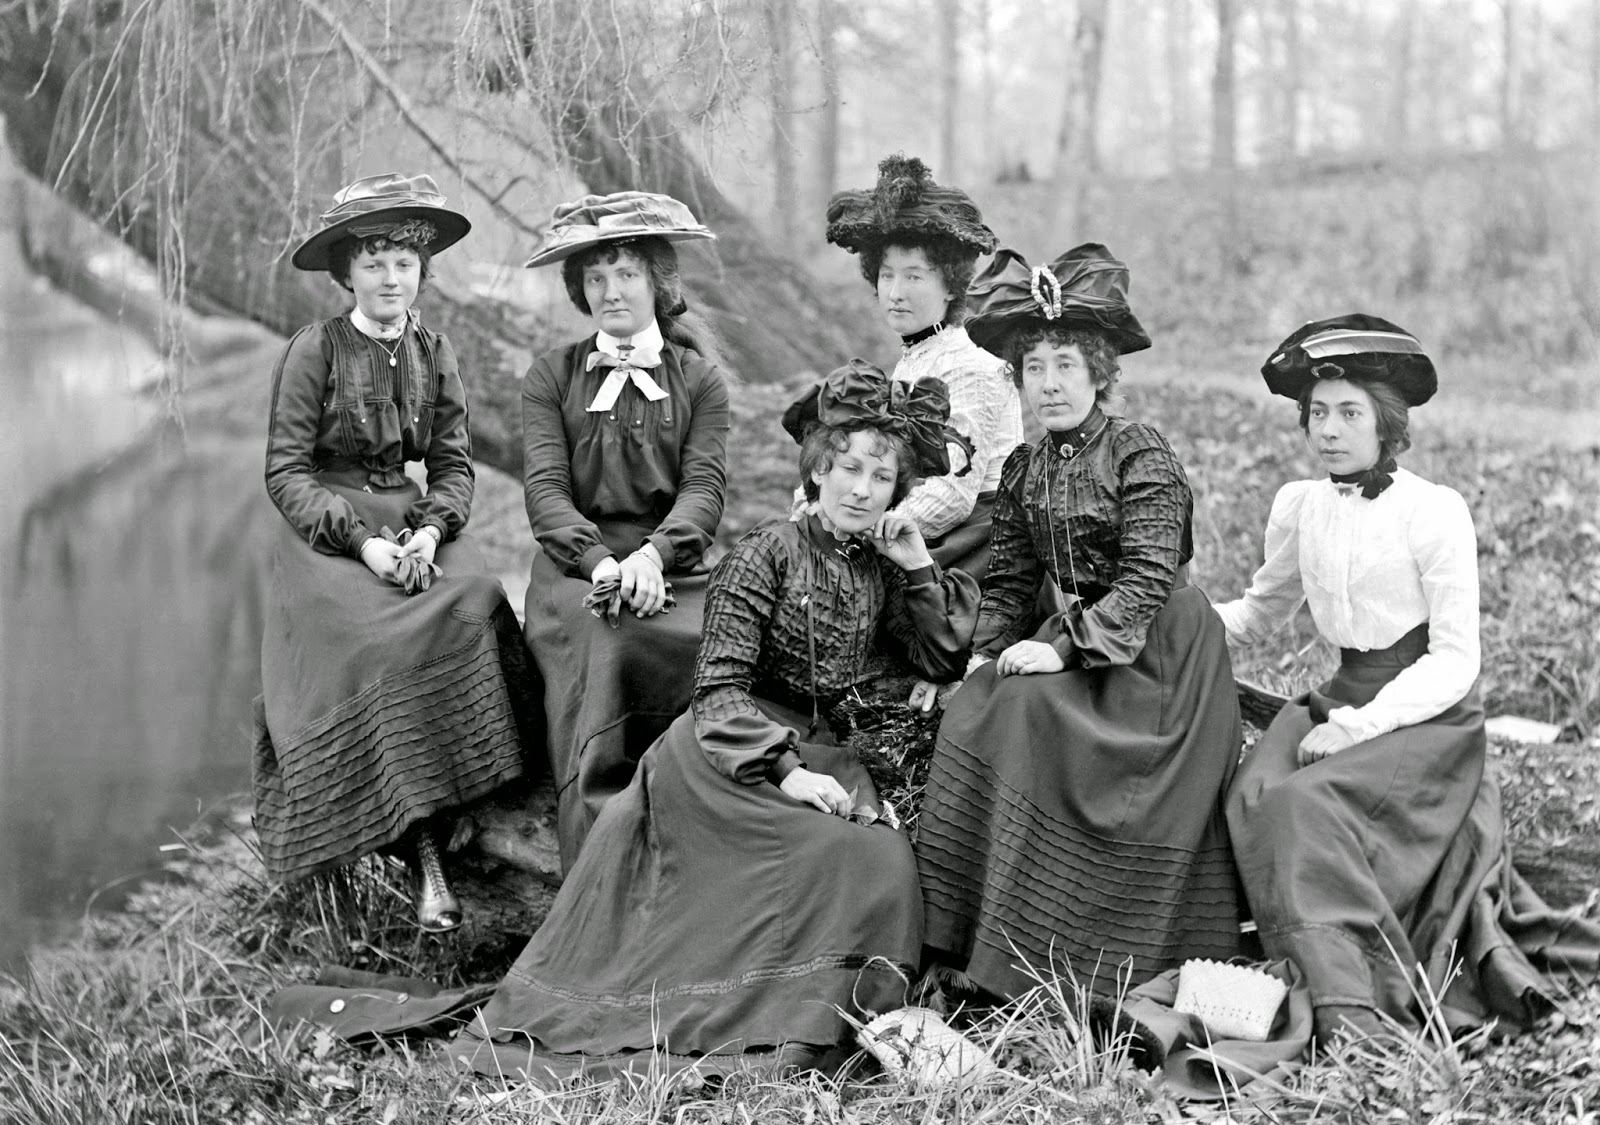 Adam MacLay - Portrait of six women, dressed in finery including elaborate hats, sitting on a river bank, 1905-26.jpg